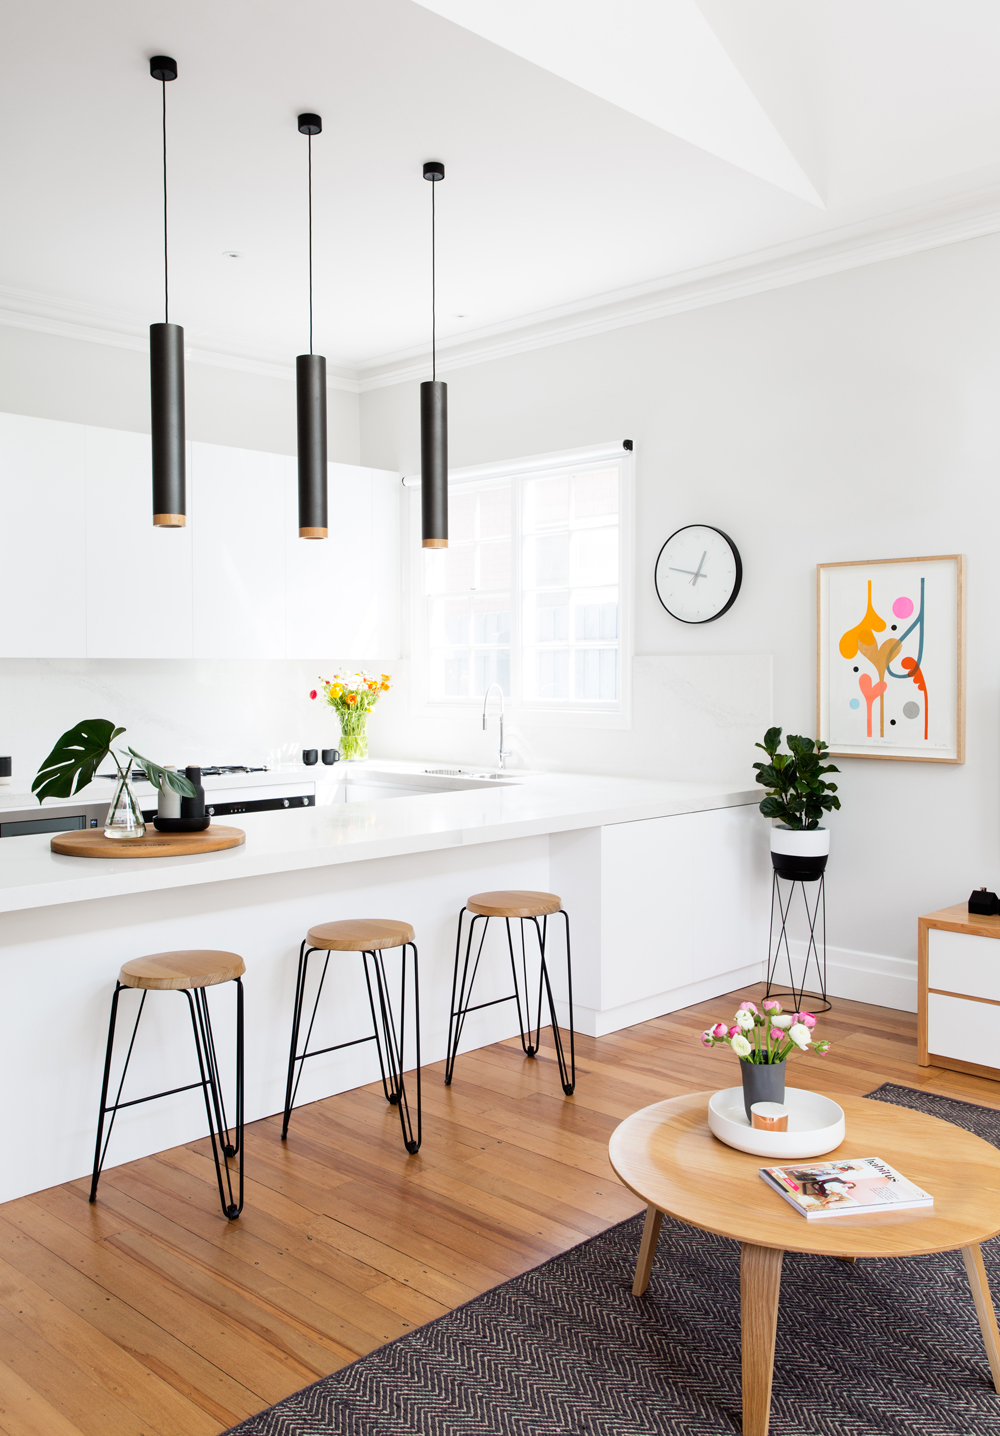 White kitchen with brown stools